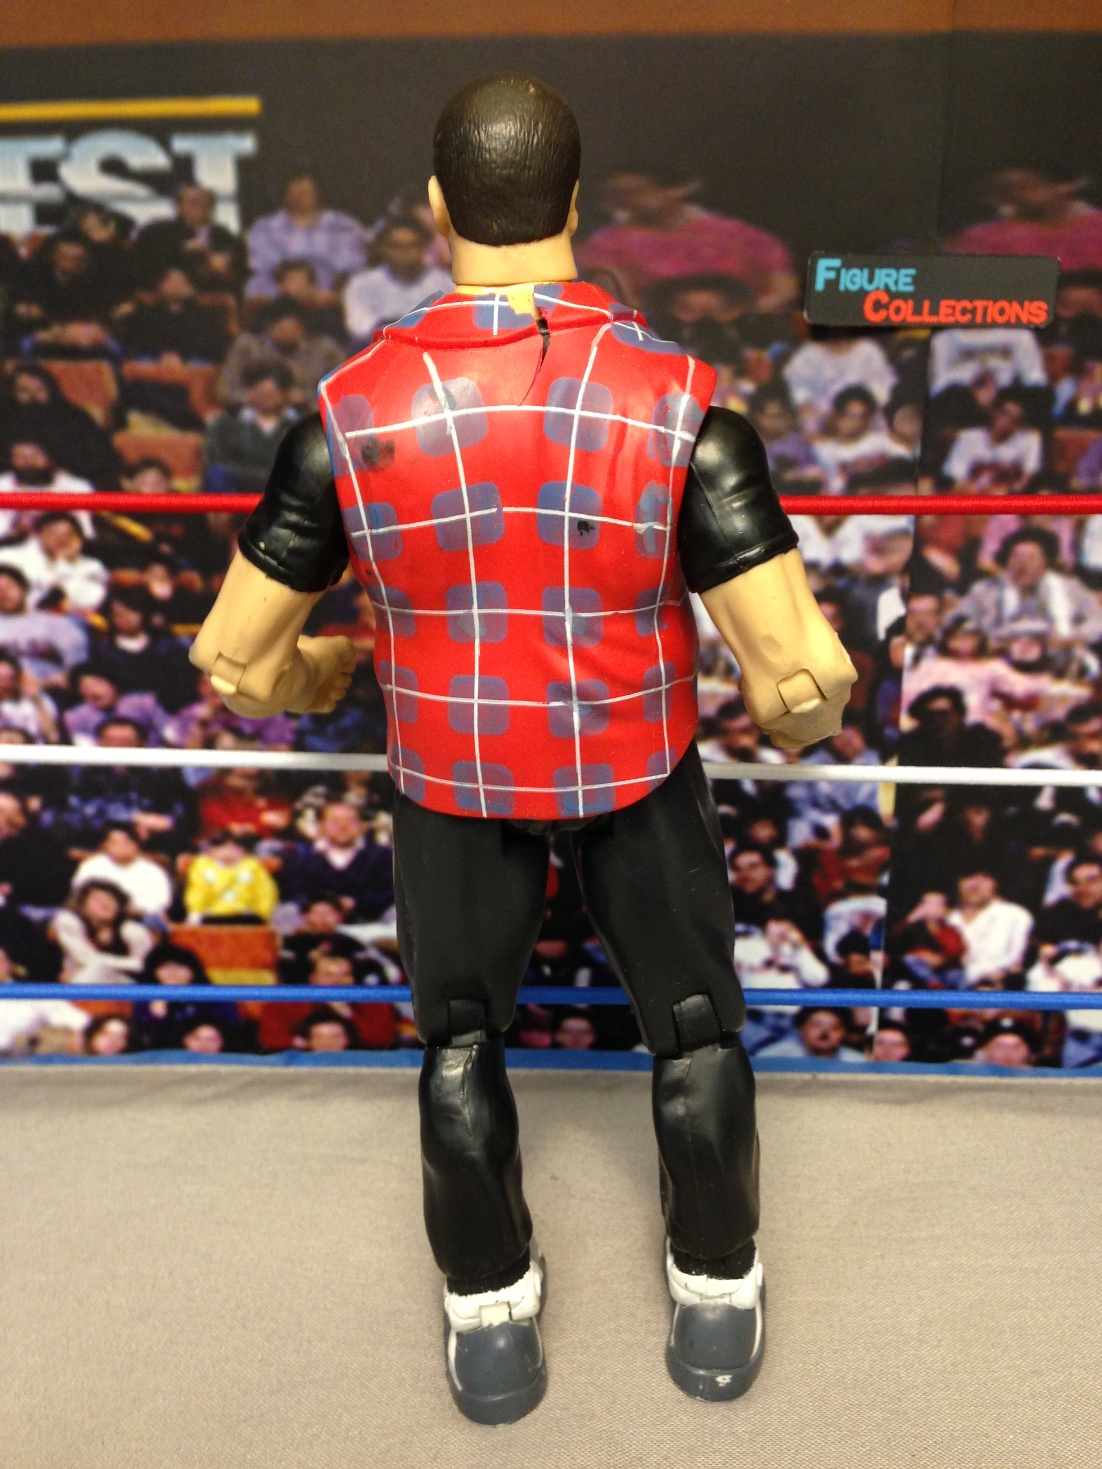 Back in the Ring (Undertaker, Mick Foley, Steve Austin)